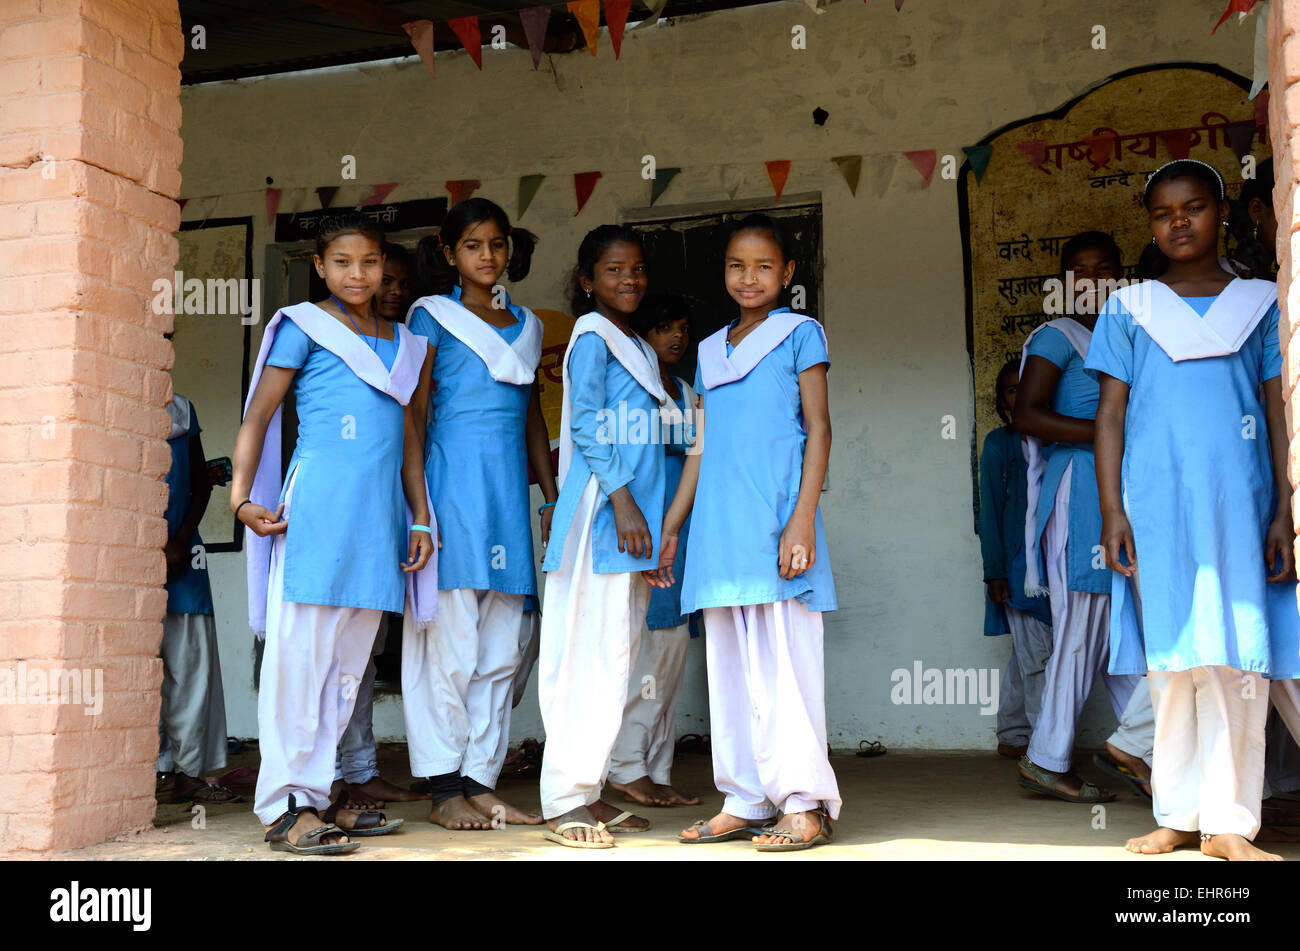 A Group Of Indian School Girls Wearing School Uniform In A Government Run School Madhya Pradesh